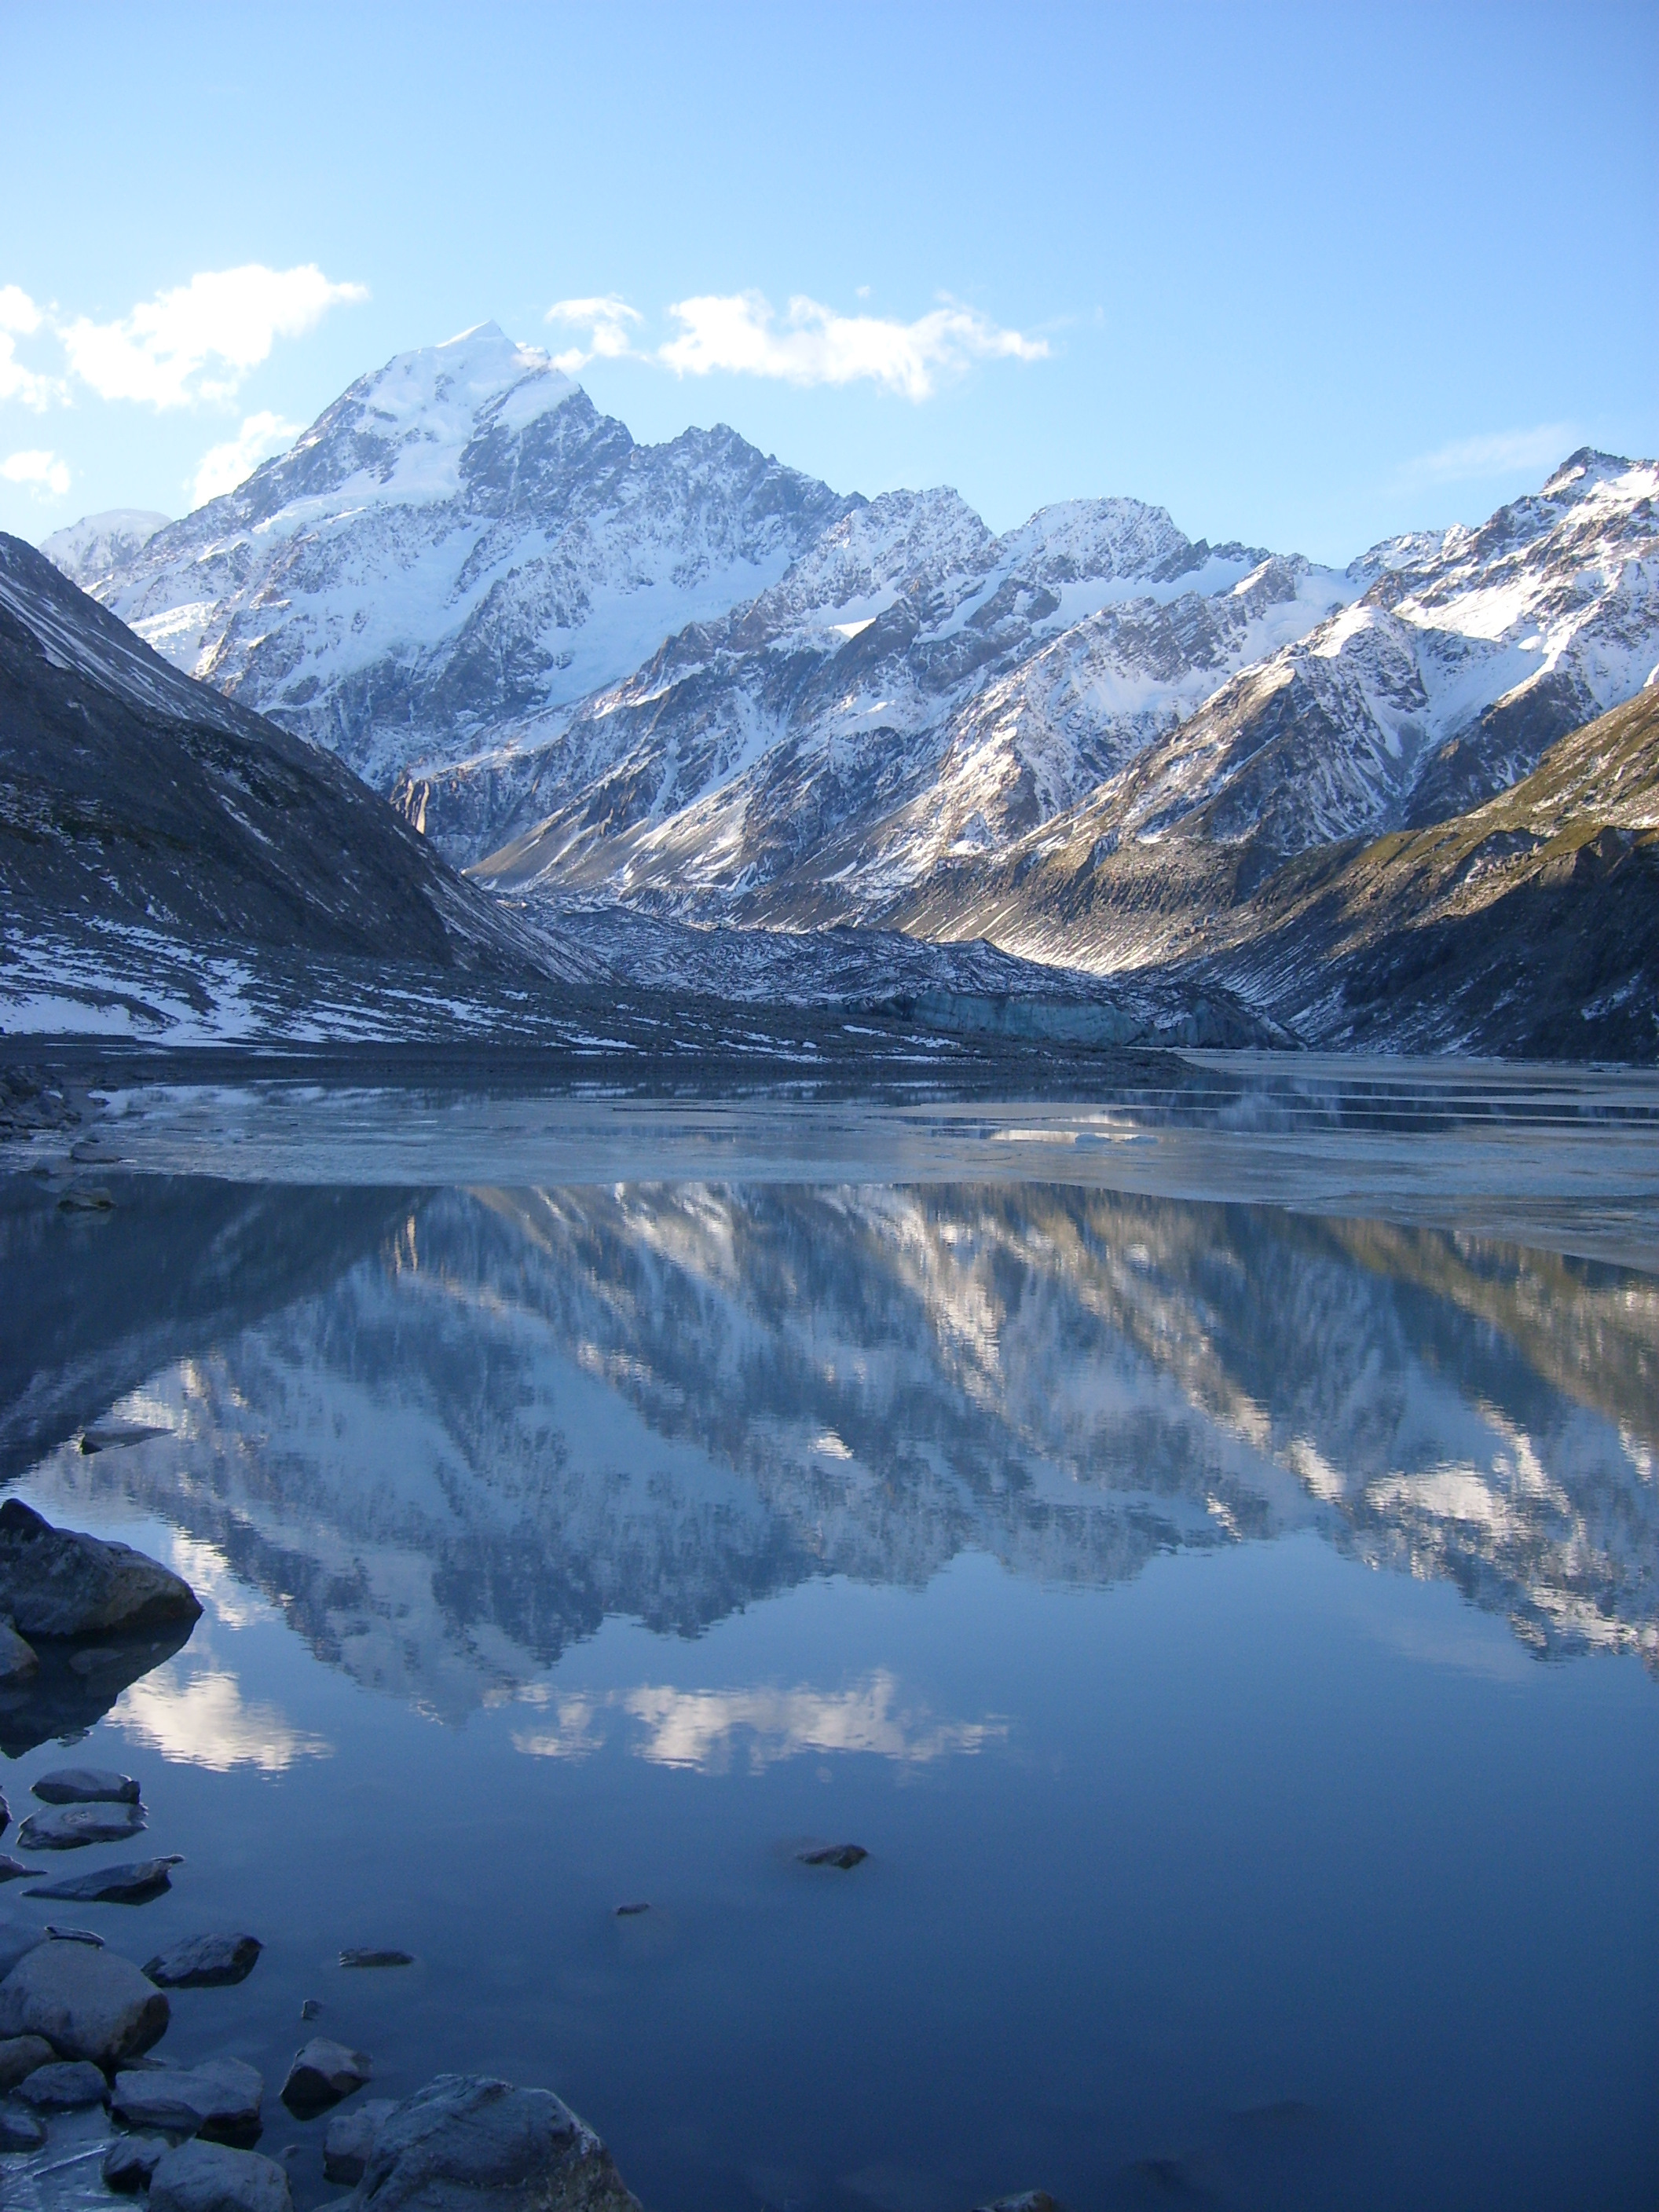 File:Aoraki Mount Cook.JPG - Wikimedia Commons